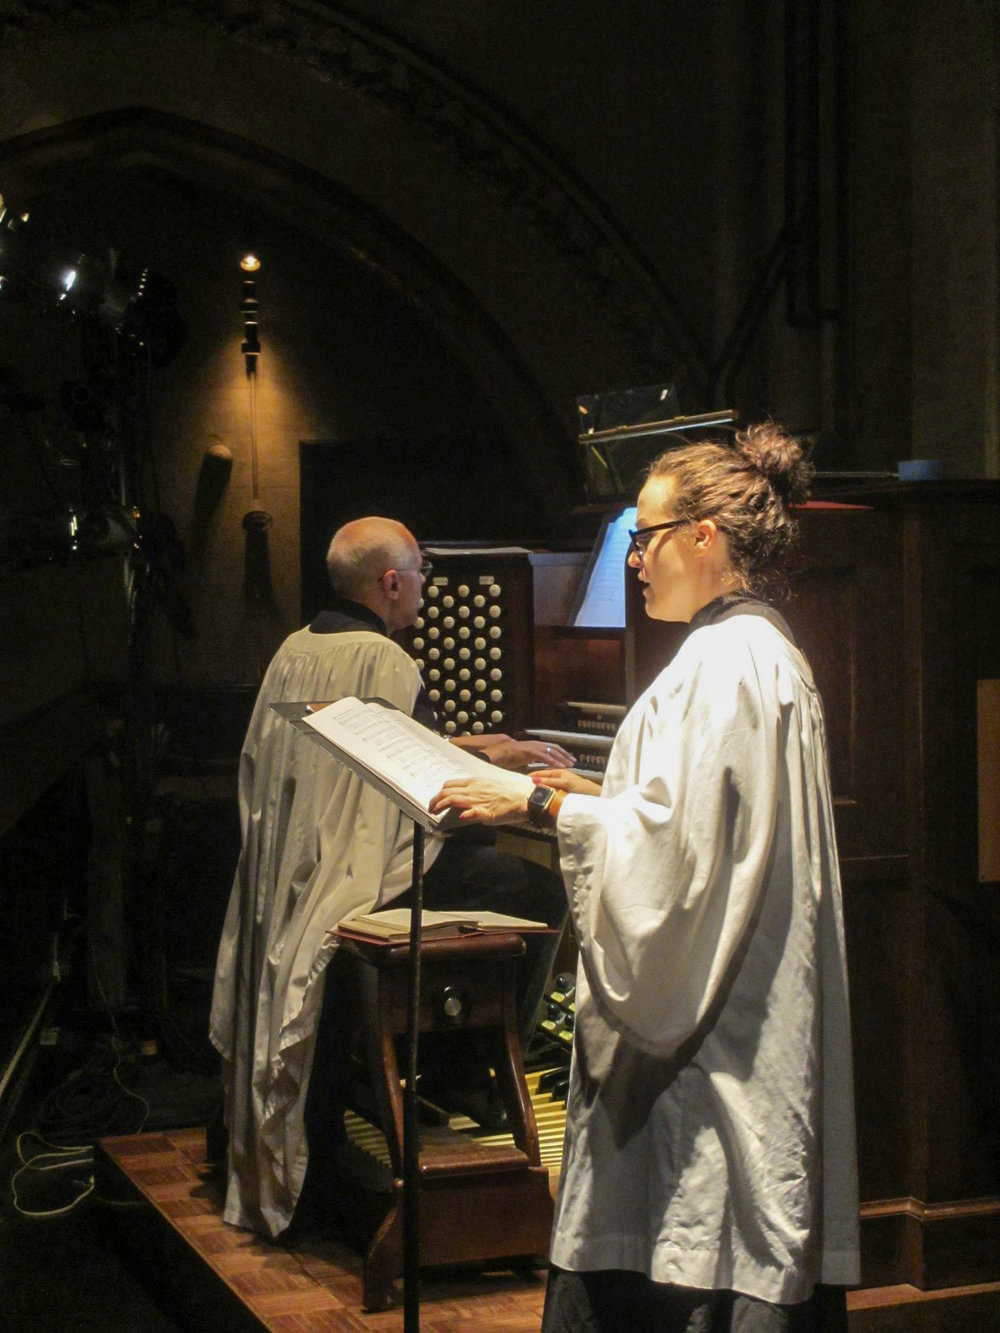 Sharon Harms was cantor for the Solemn Mass.